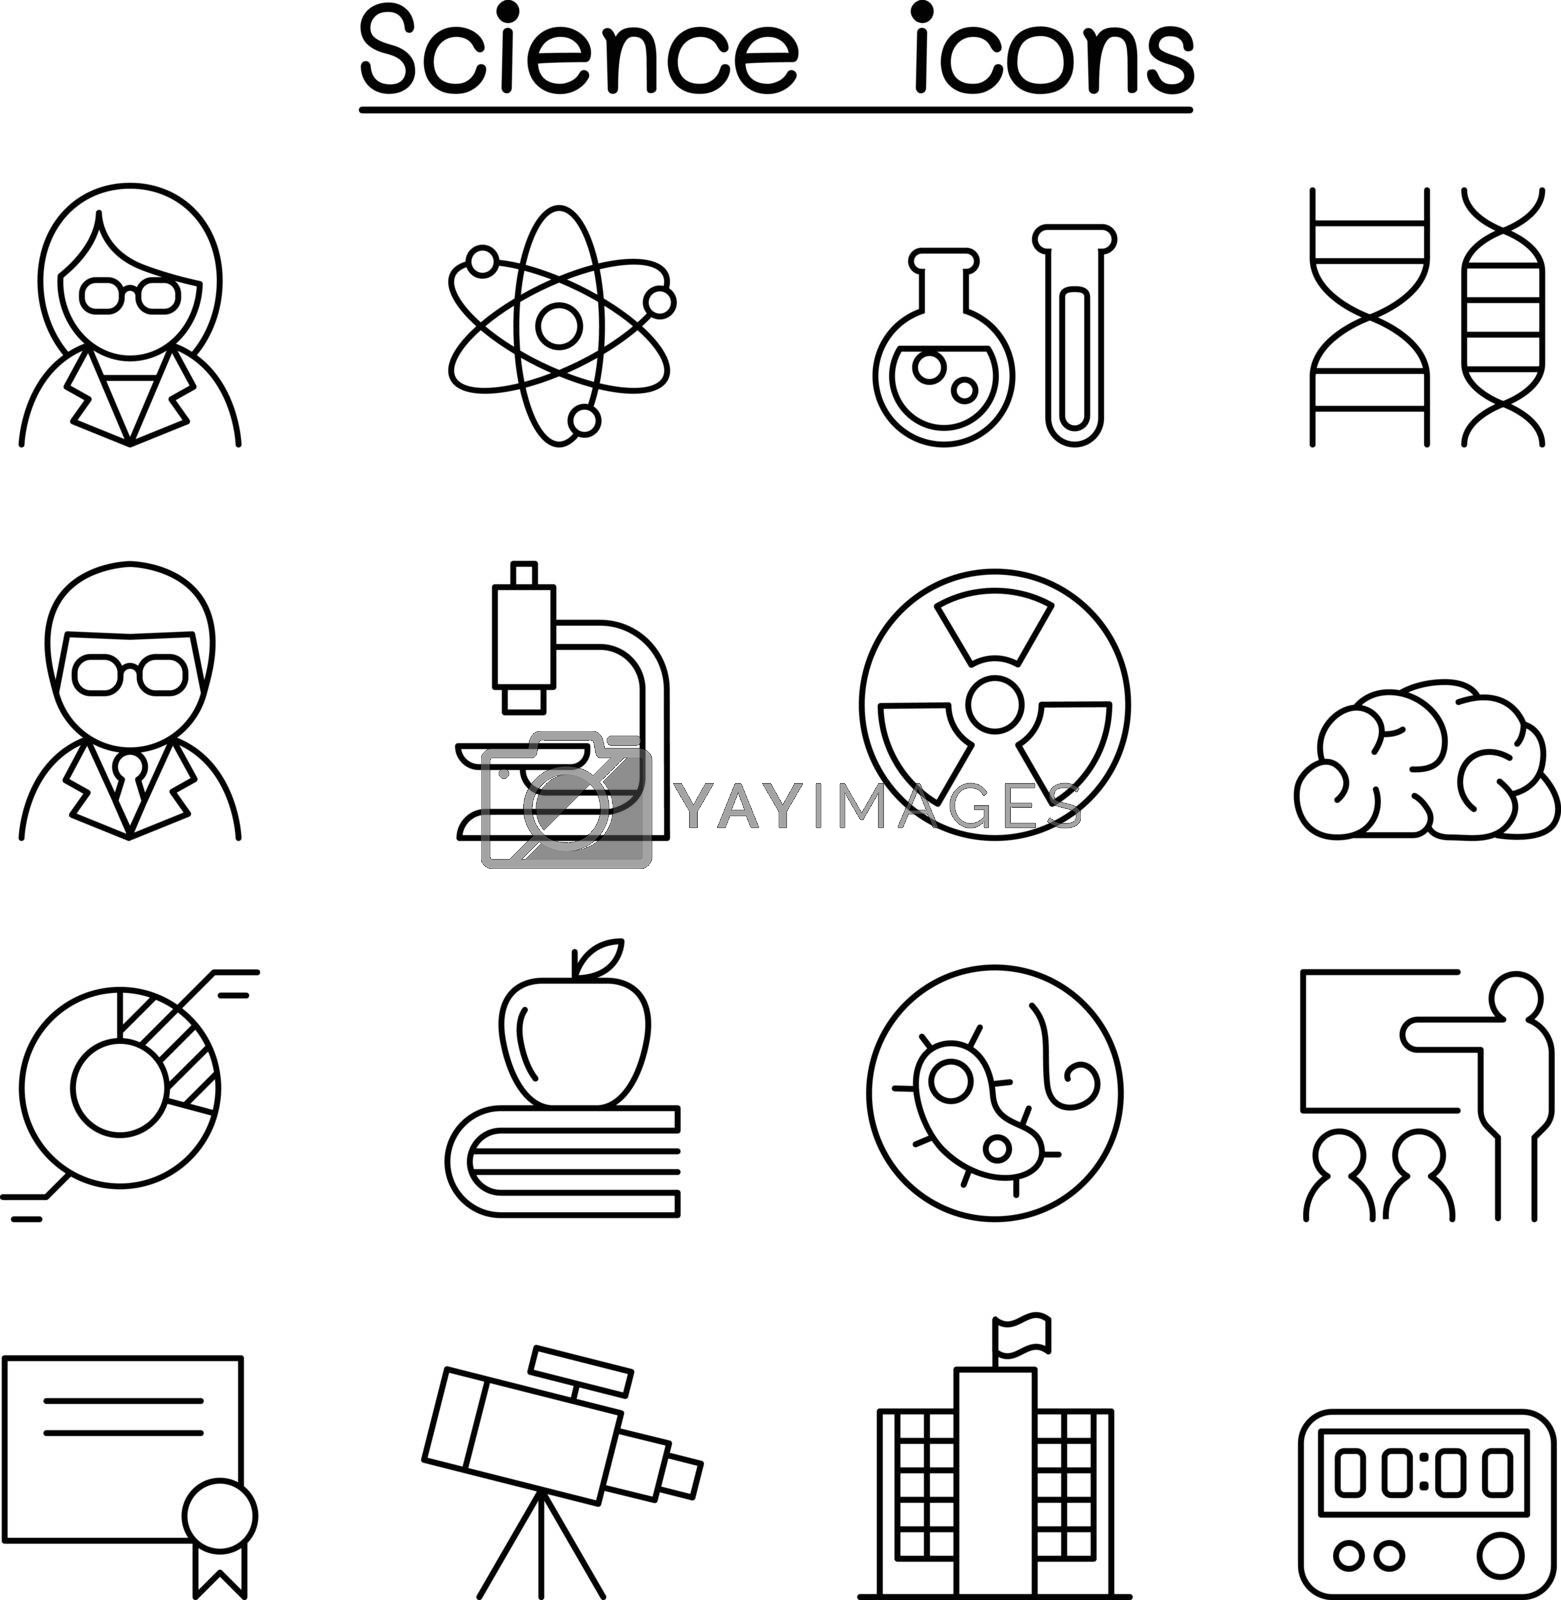 Science icon set in thin line style